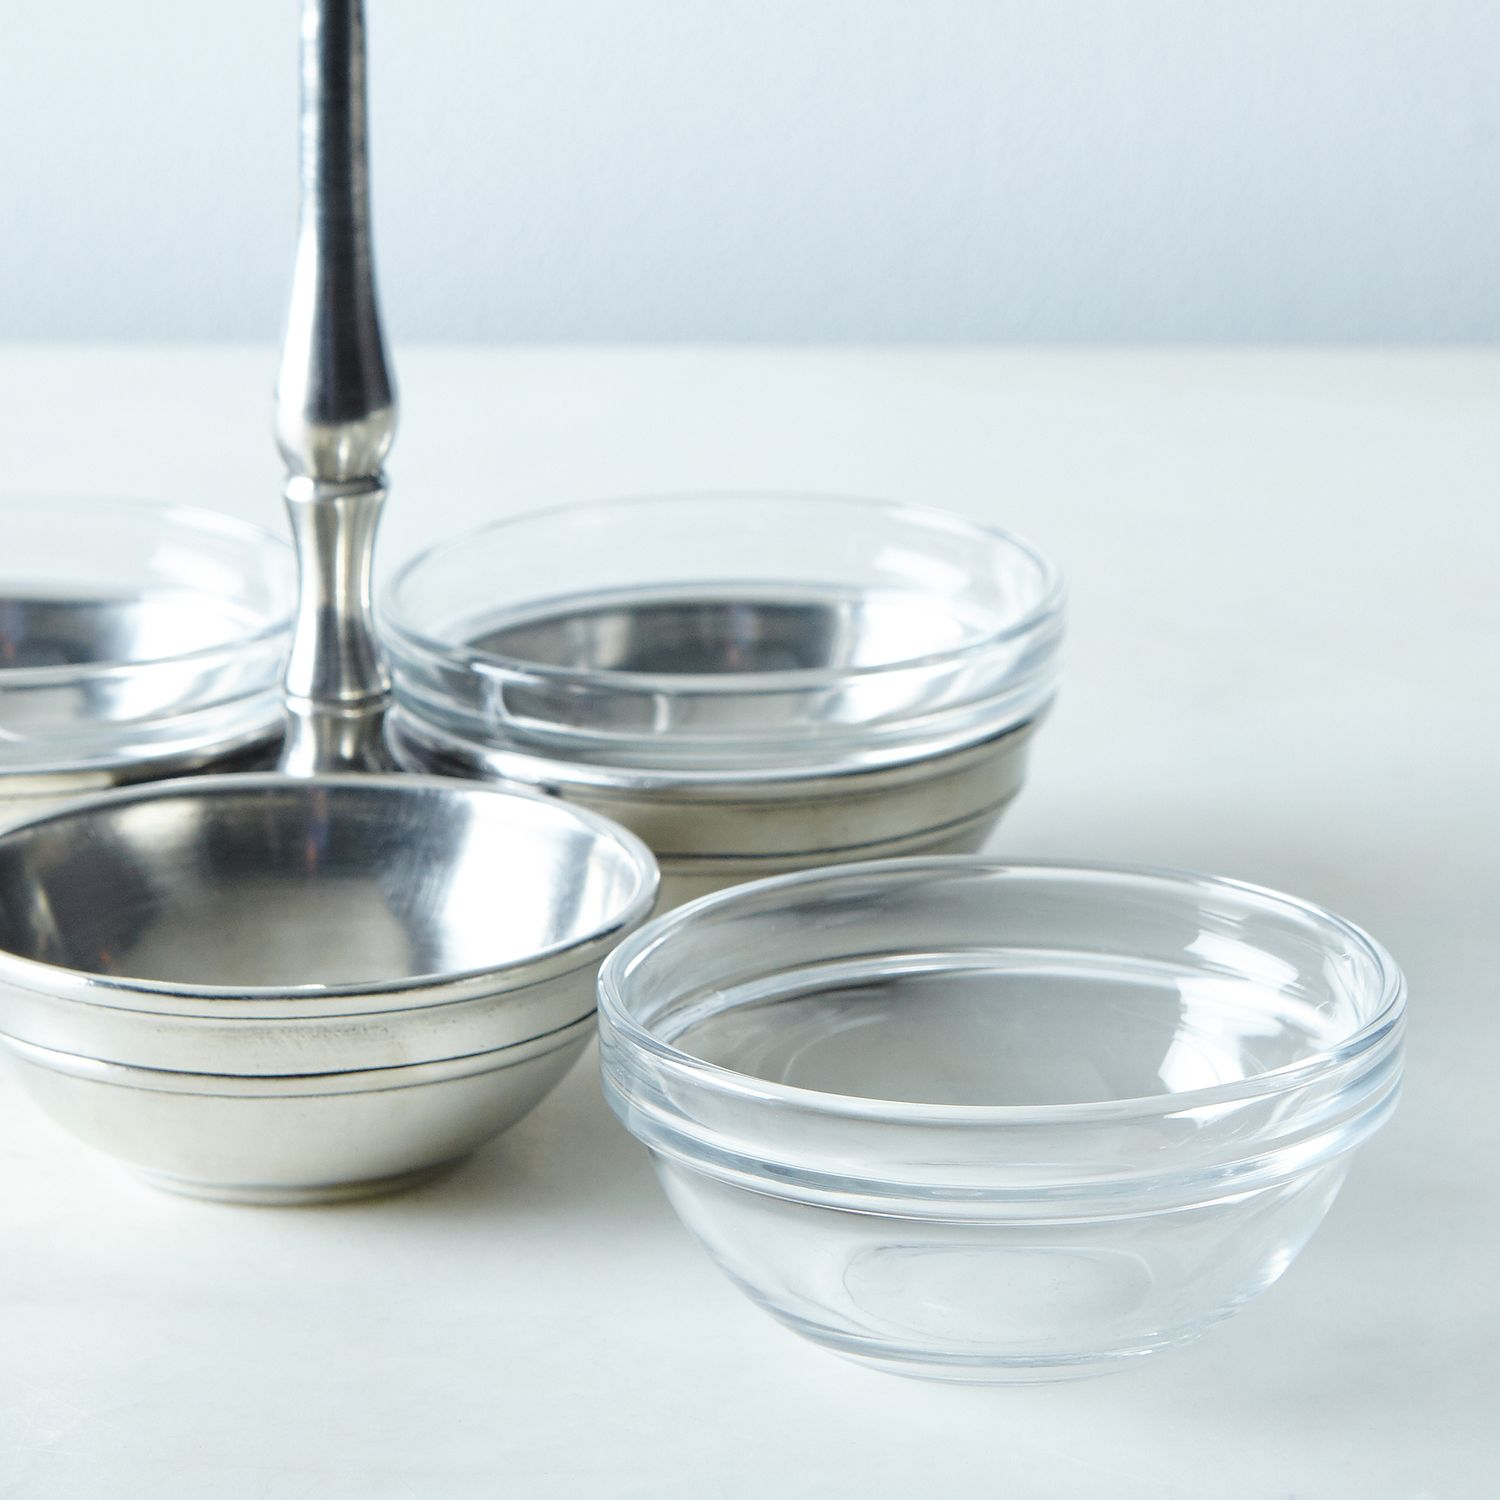 Pewter Amp Glass Condiment Trio Tray On Food52